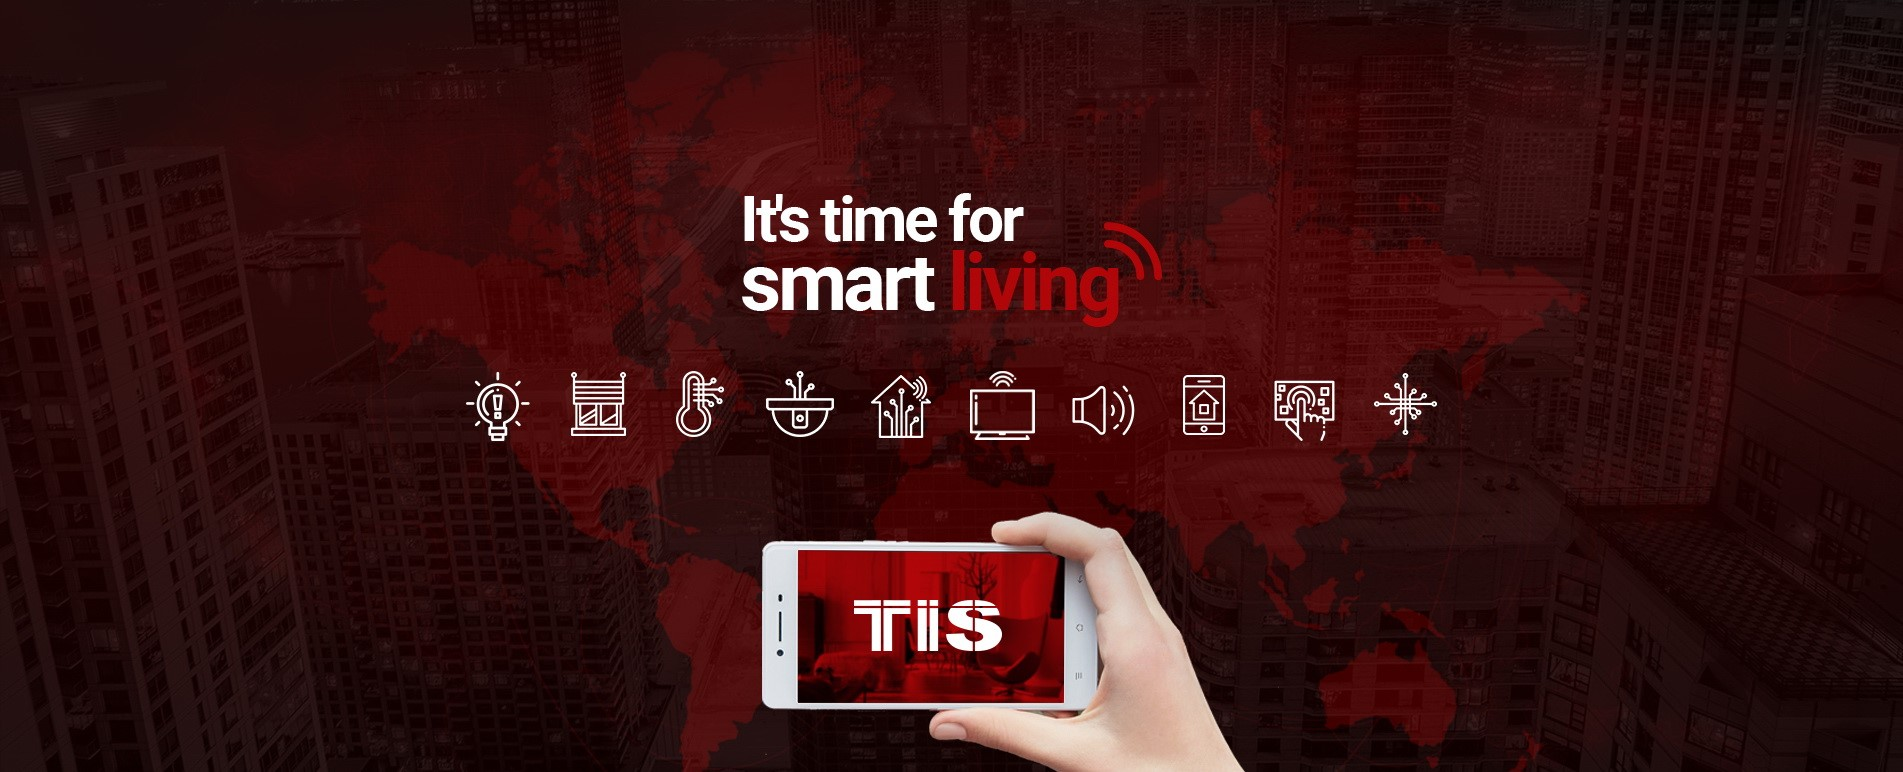 TIS Smart Home free apps – control your room remotely